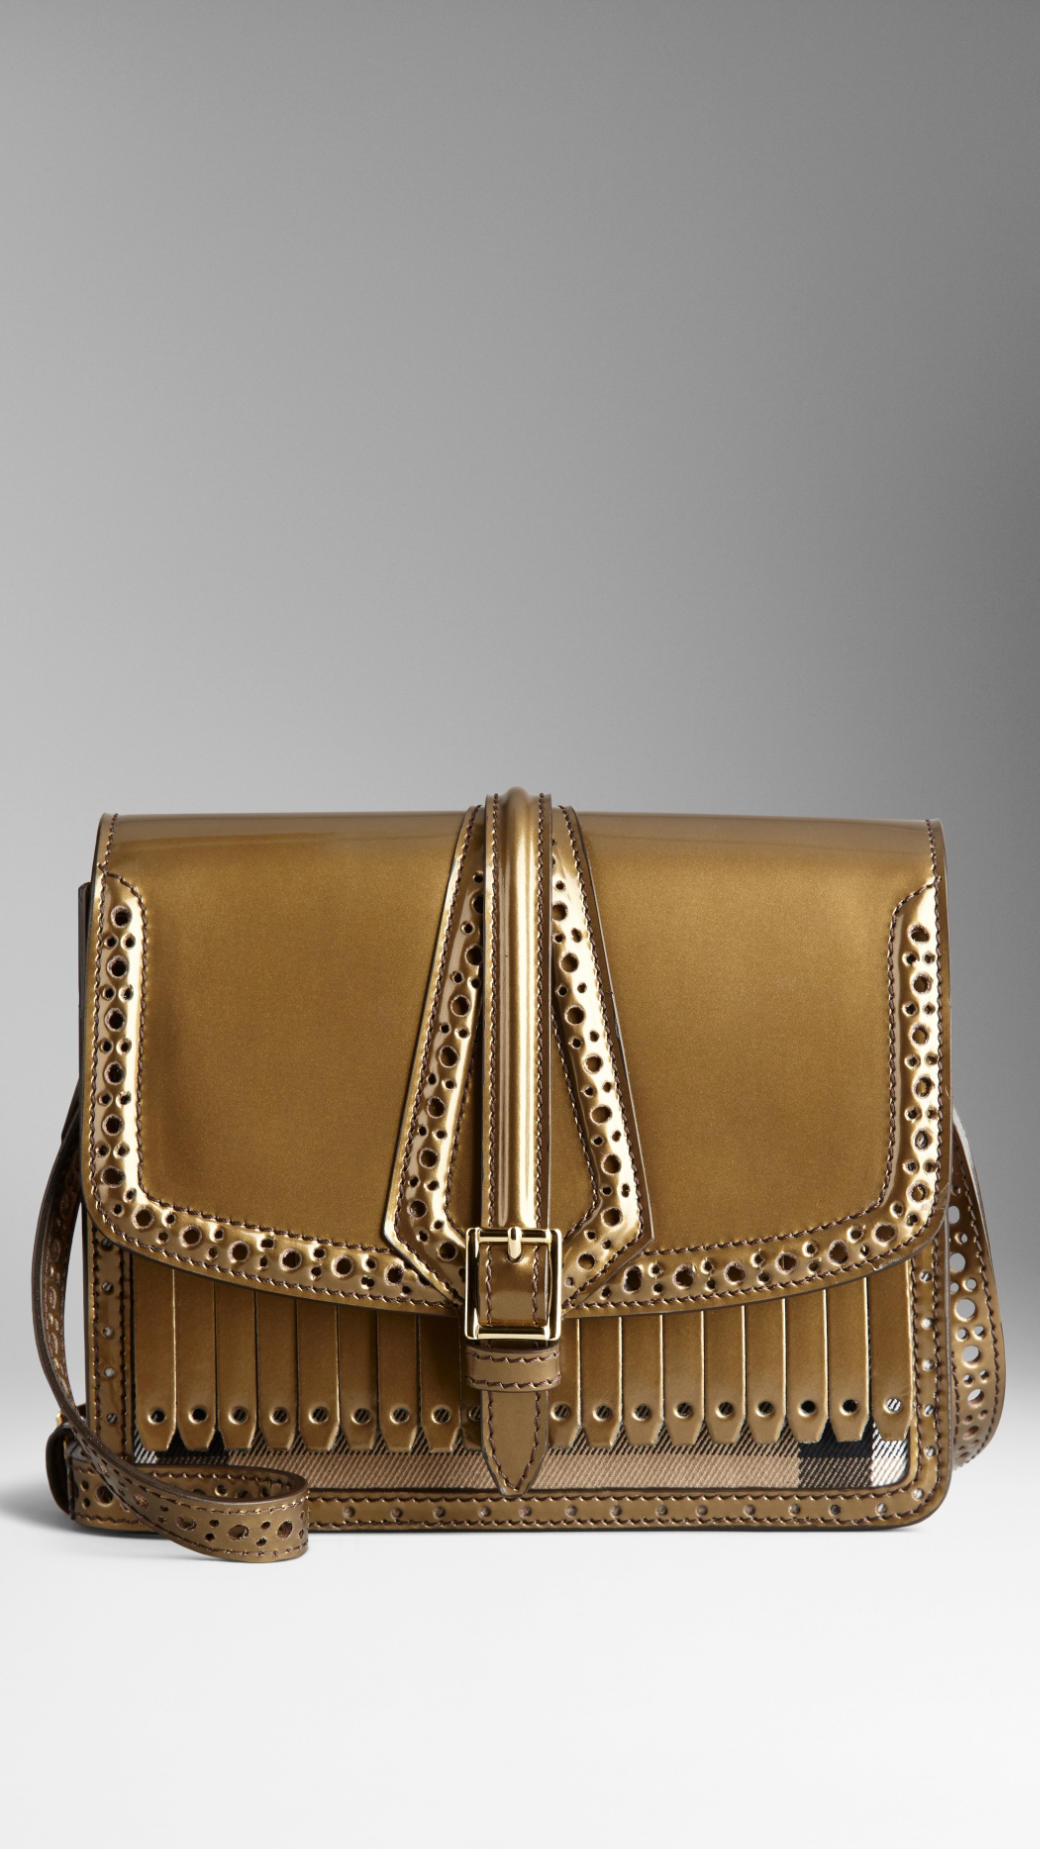 Sac Burberry house check de style Richelieu